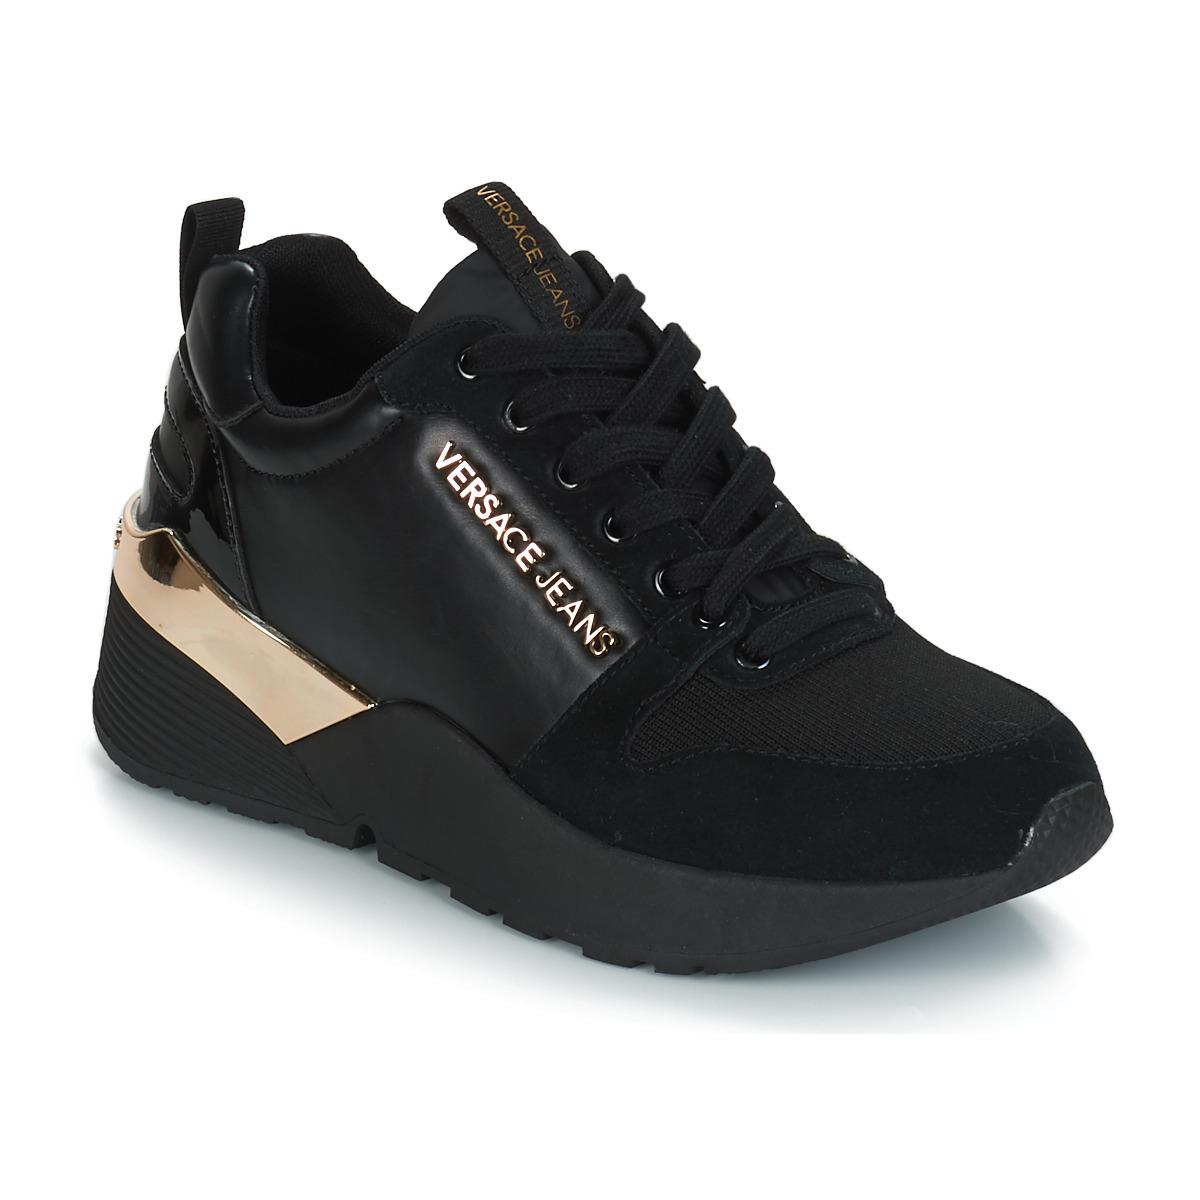 Versace Jeans Denim Donies Shoes (trainers) in Black - Lyst